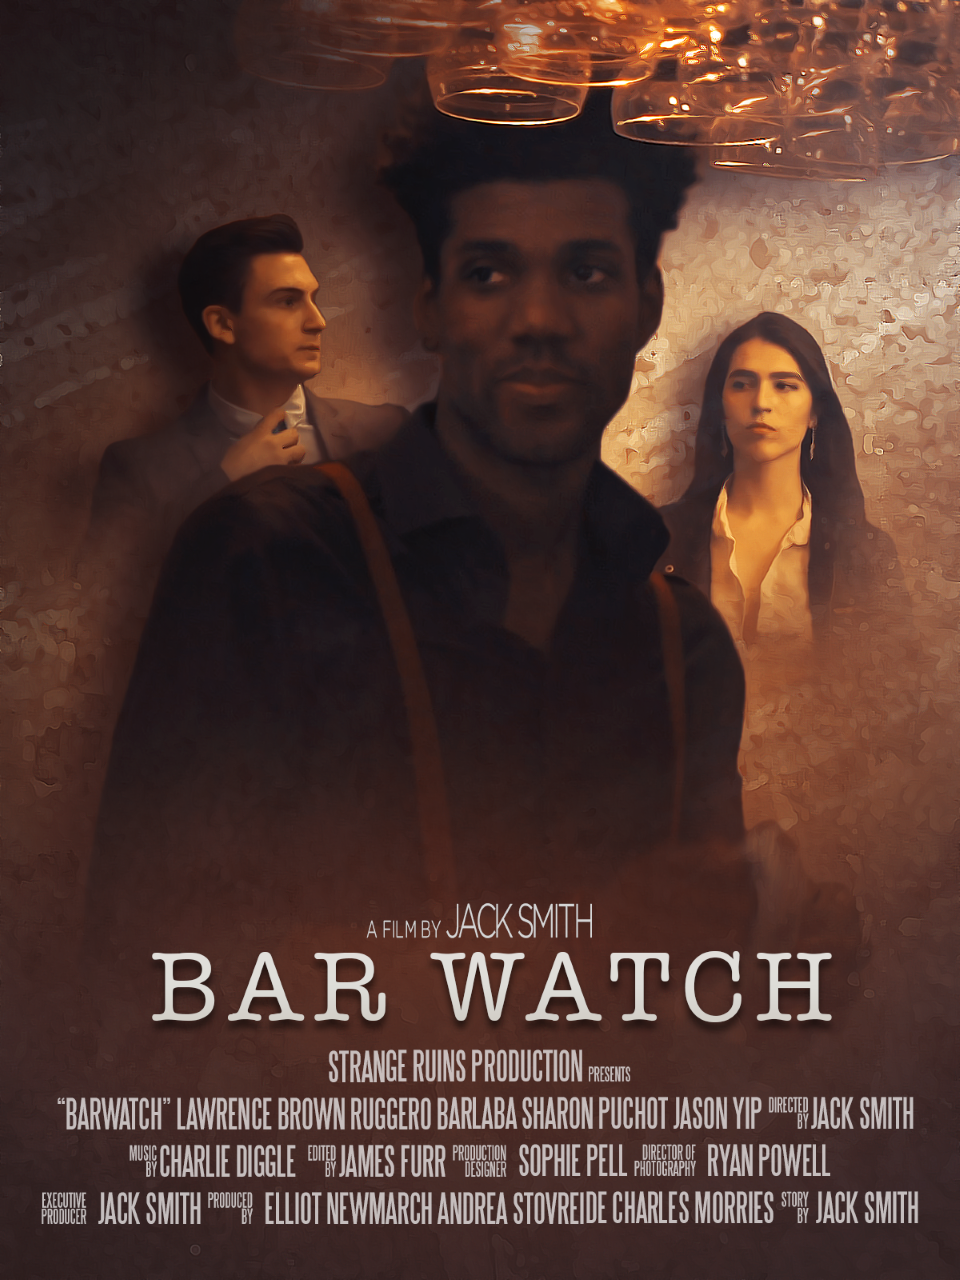 Poster for Bar Watch showing protagonists.